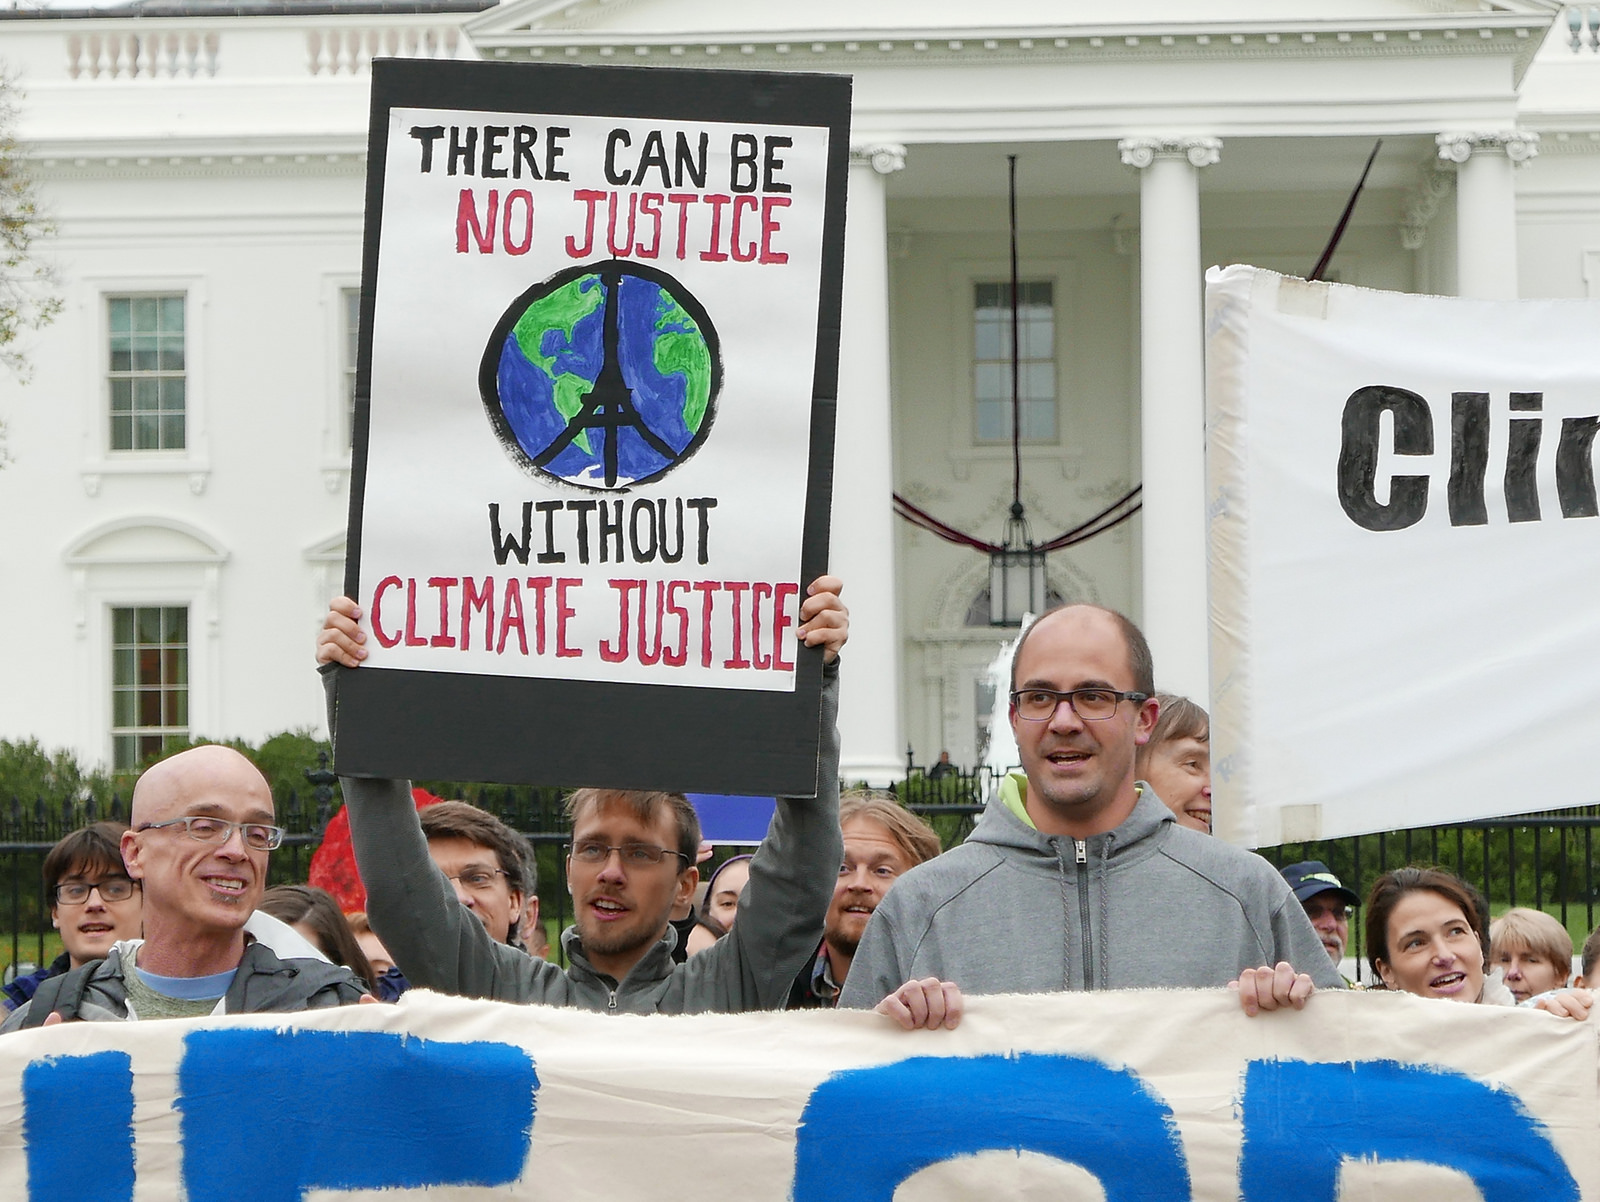 The number of Americans who care deeply about climate action has grown